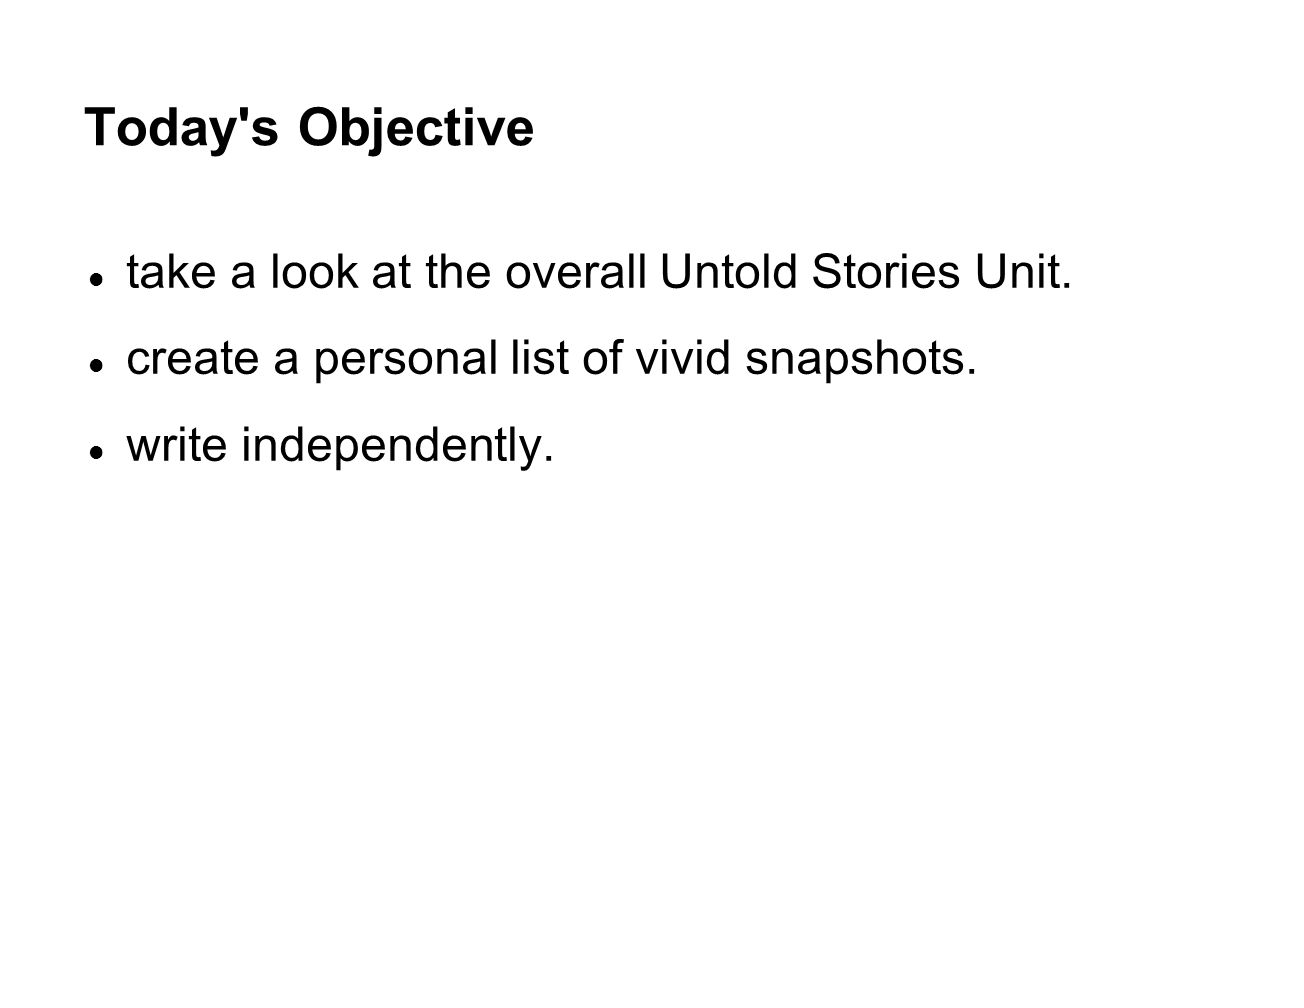 Today s Objective take a look at the overall Untold Stories Unit.